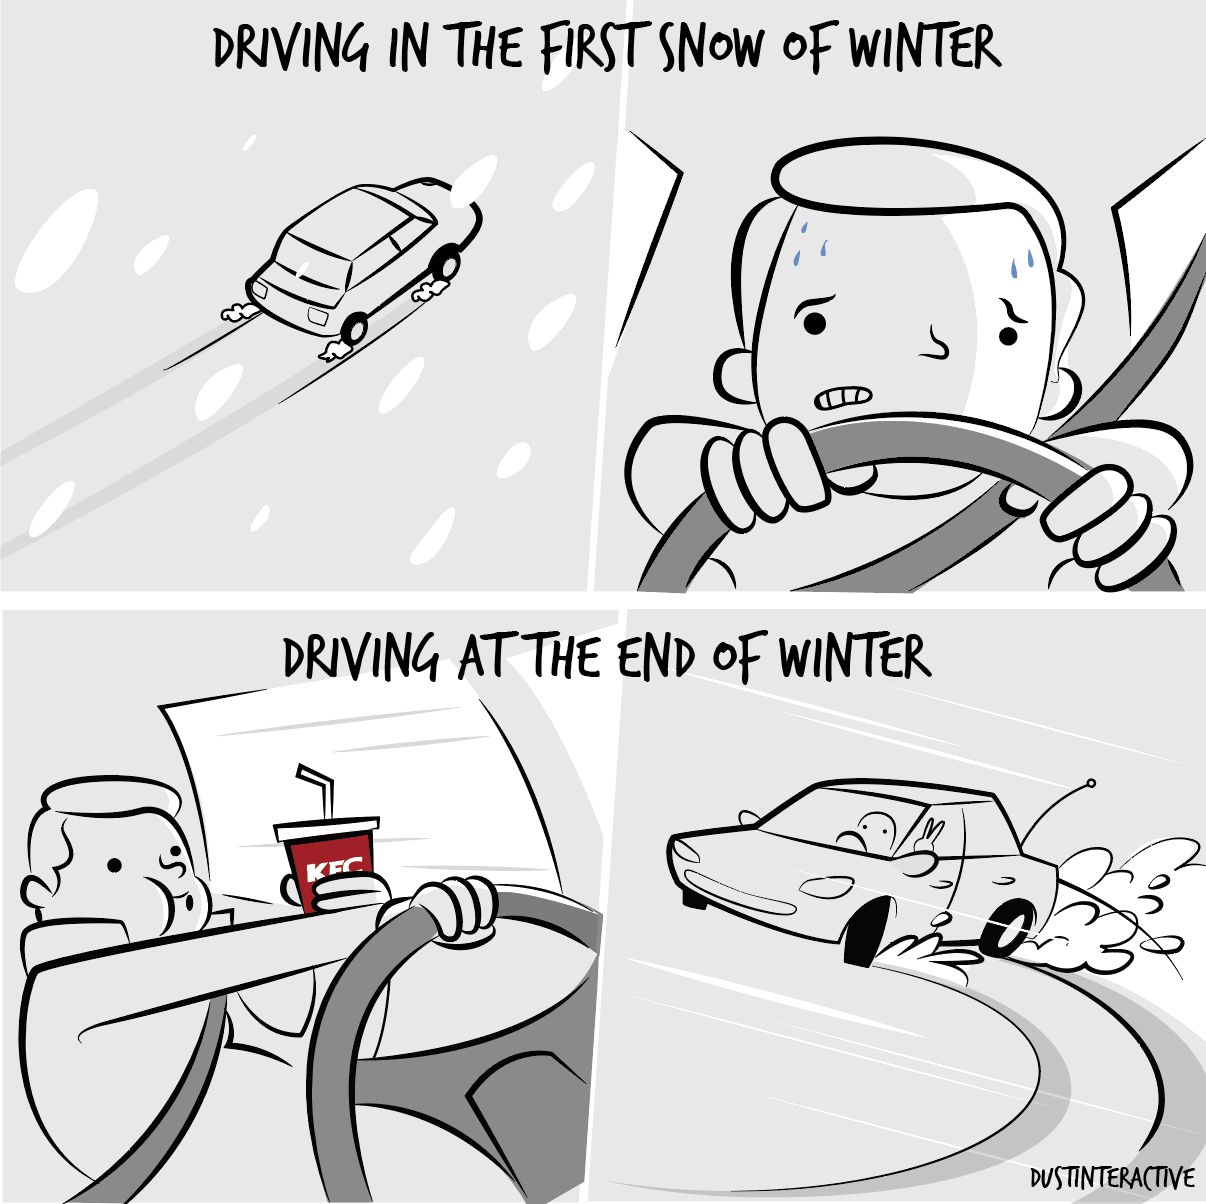 Driving in the first and last snow of winter